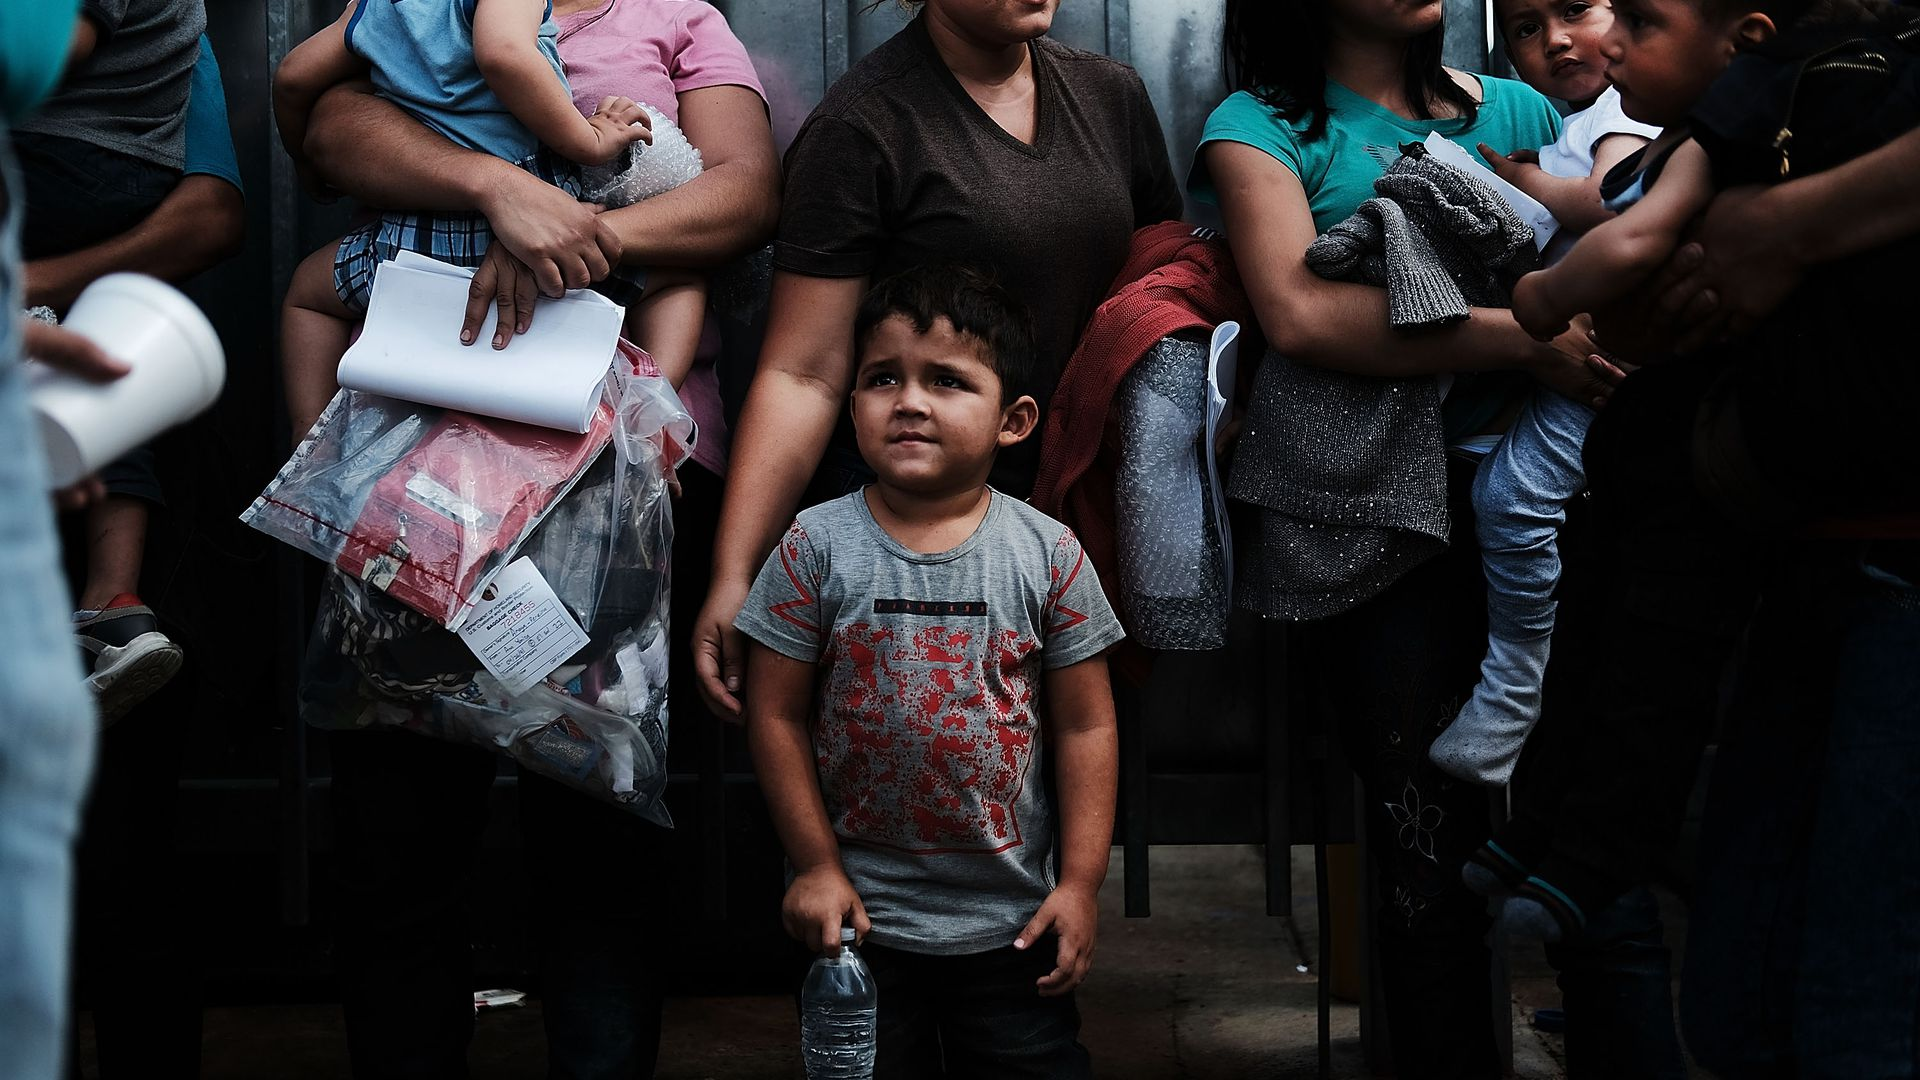 Dozens of women and their children, many fleeing poverty and violence in Honduras, Guatamala and El Salvador, arrive at a bus station following release from Customs and Border Protection in Texas.